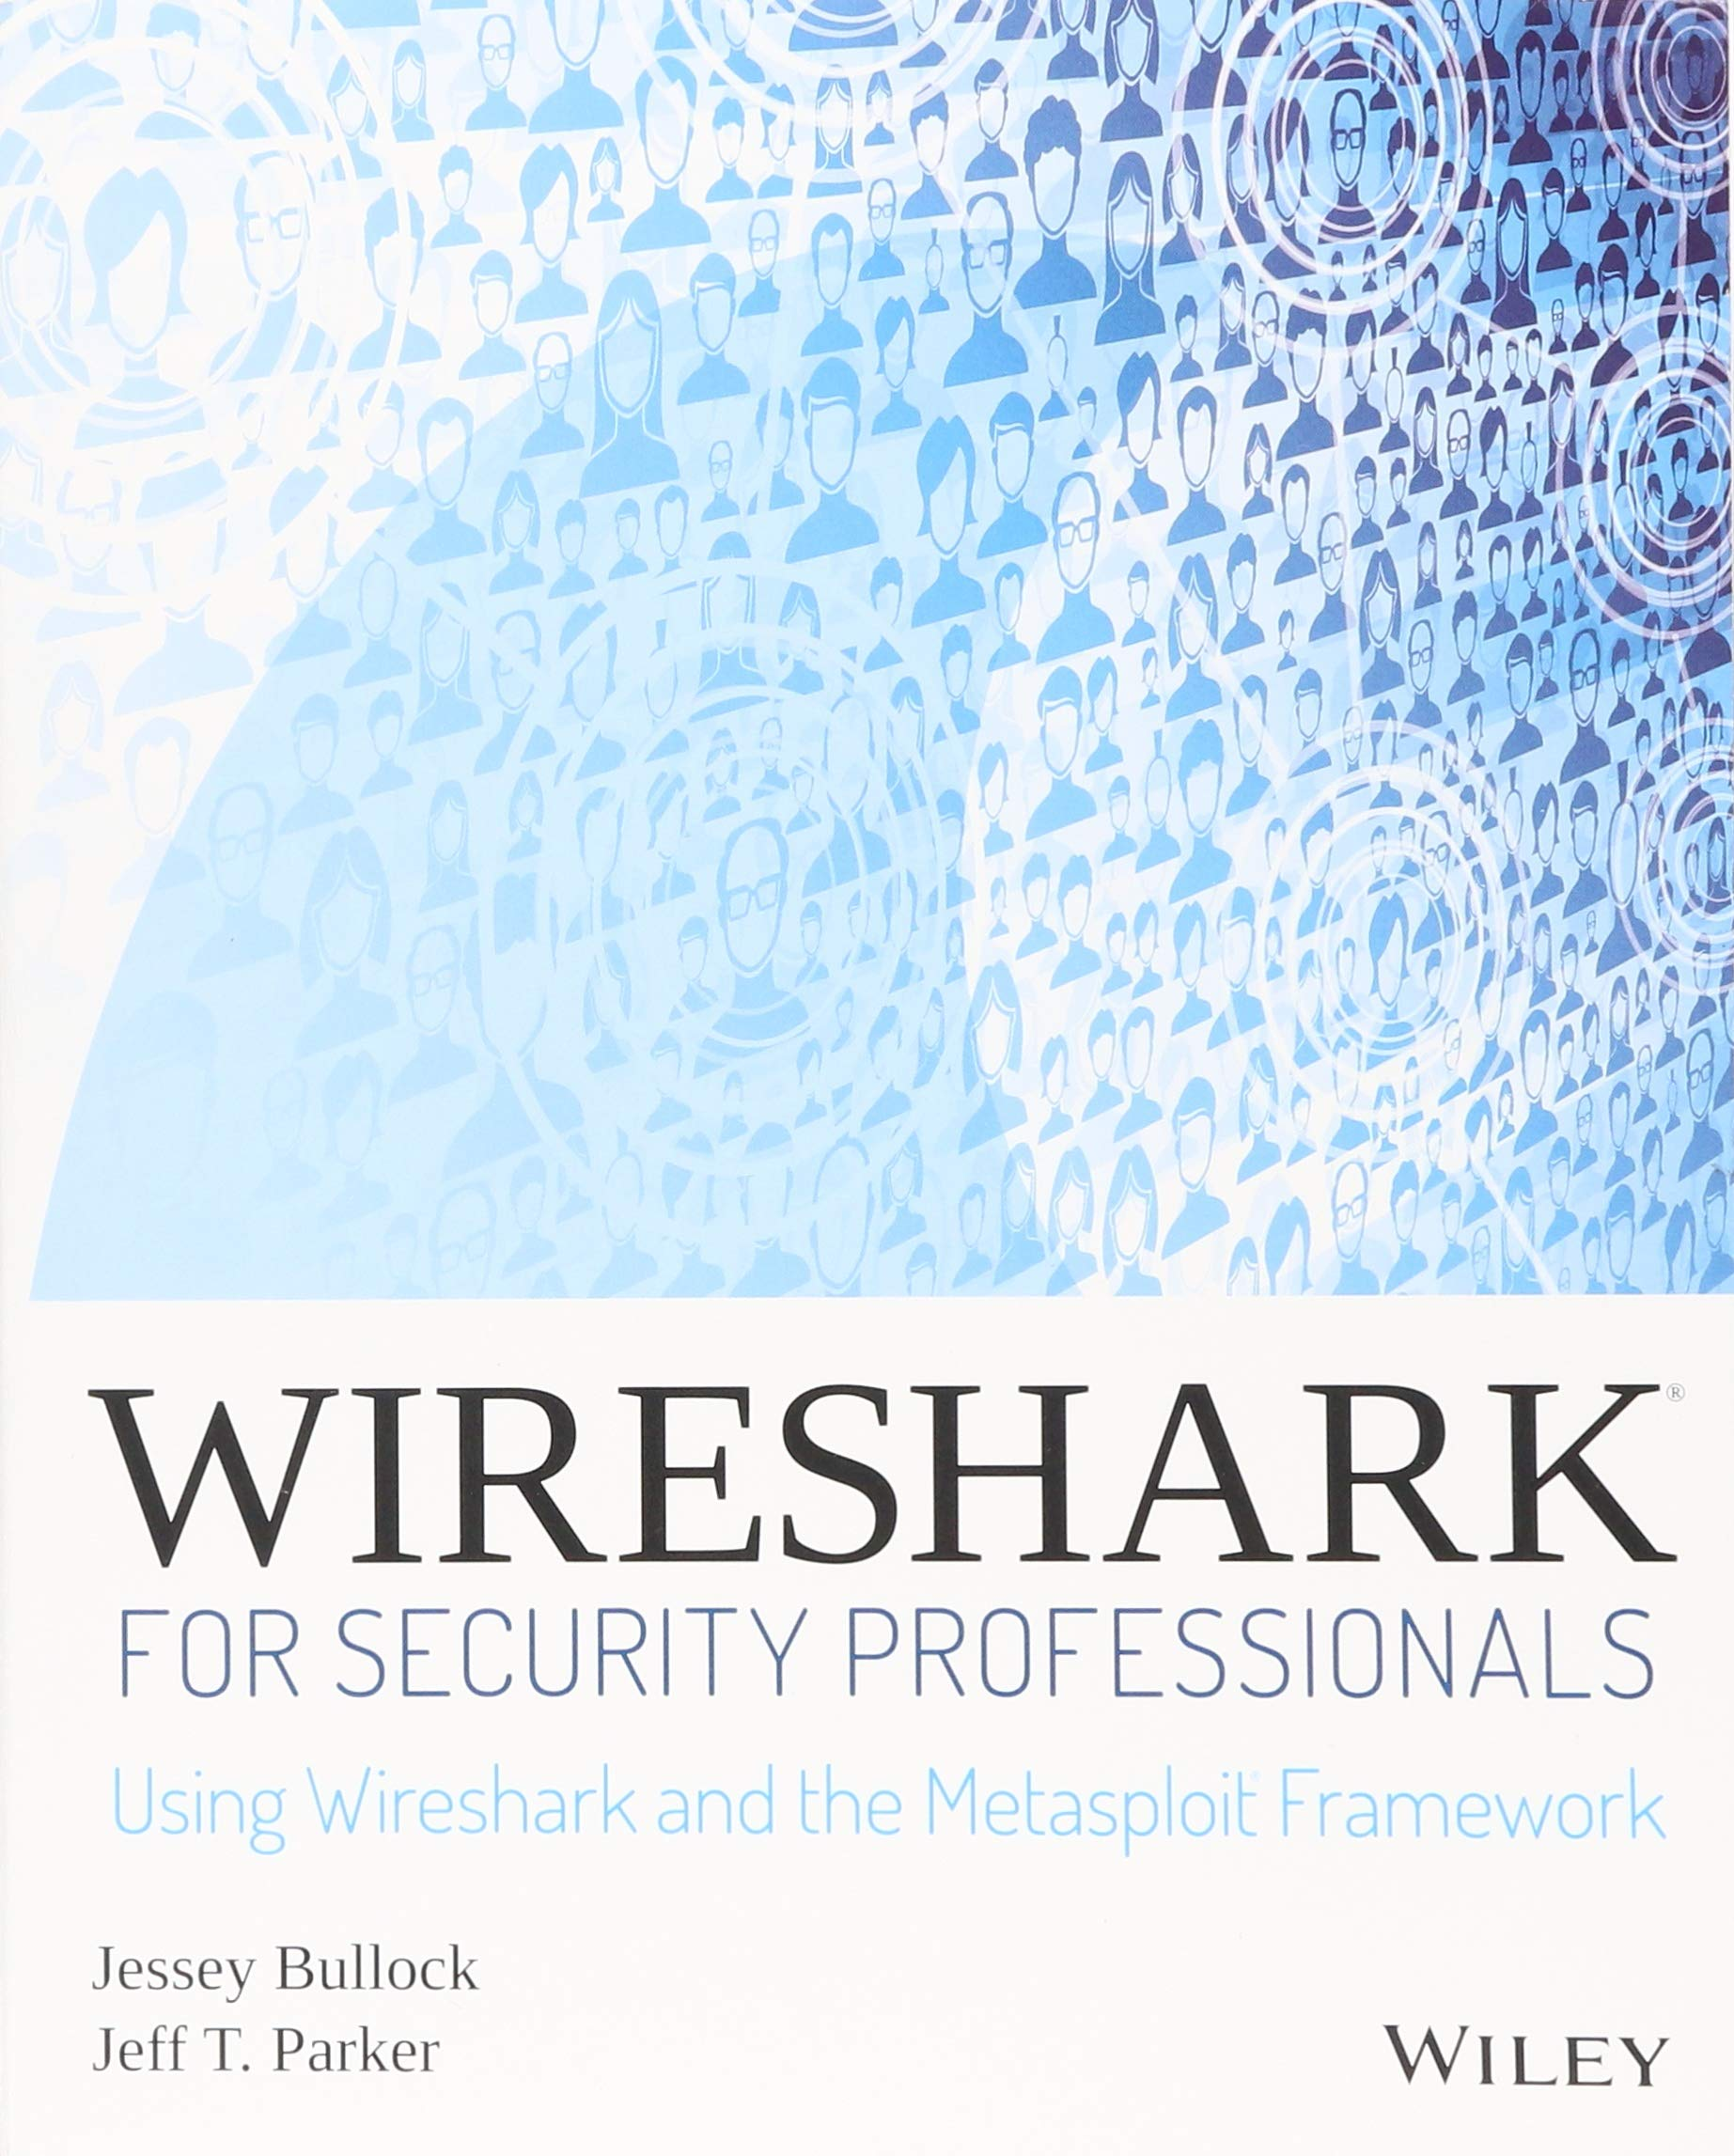 Wireshark for Security Professionals: Using Wireshark and